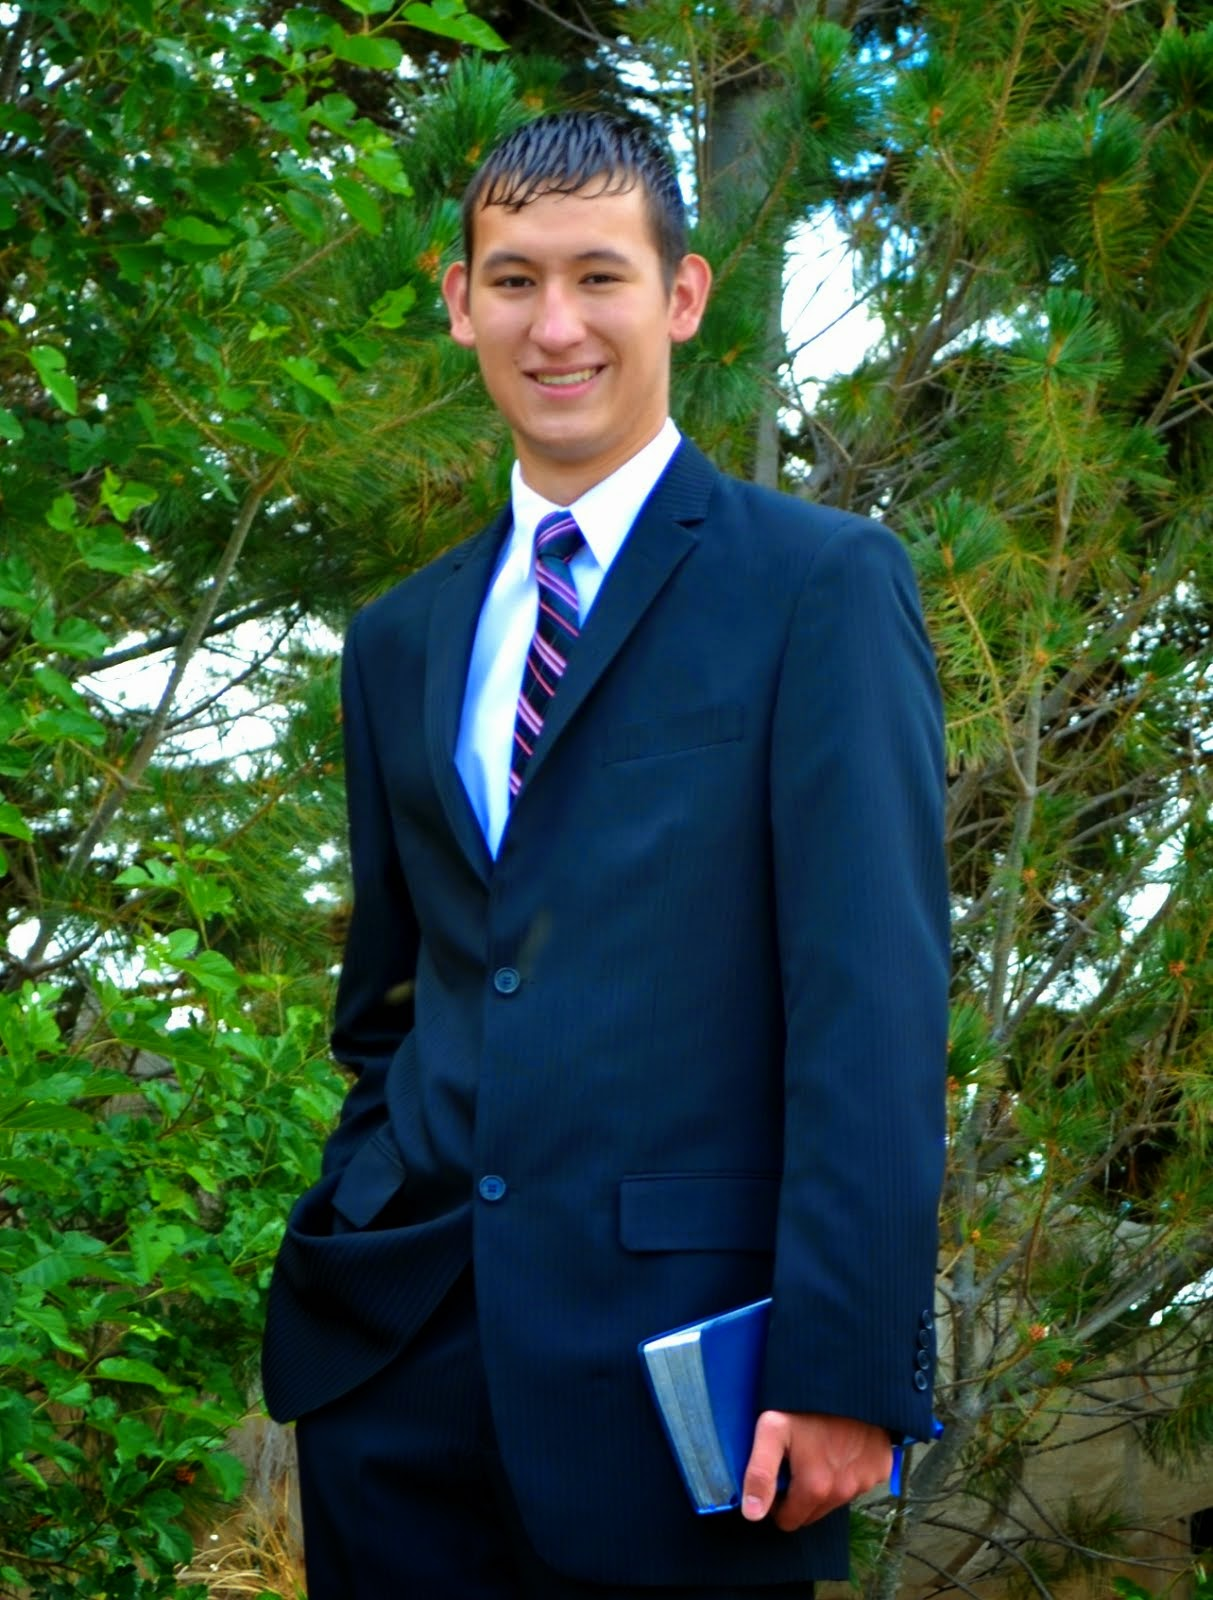 Elder Britton Bunn